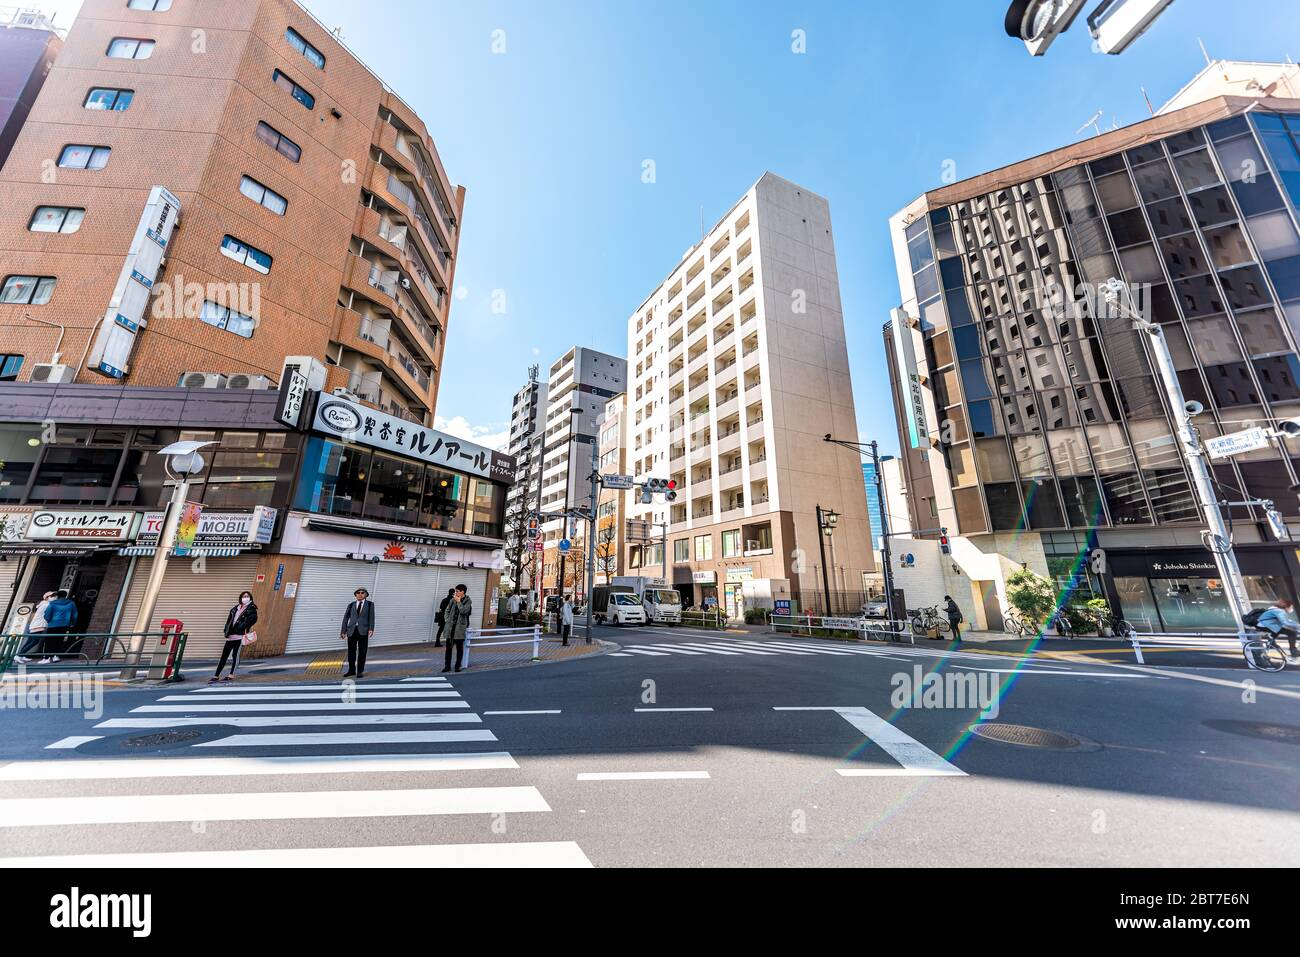 Tokyo, Japan - April 1, 2019: Shinjuku street with people waiting at crosswalk in morning commute on road wide angle view with flare Stock Photo